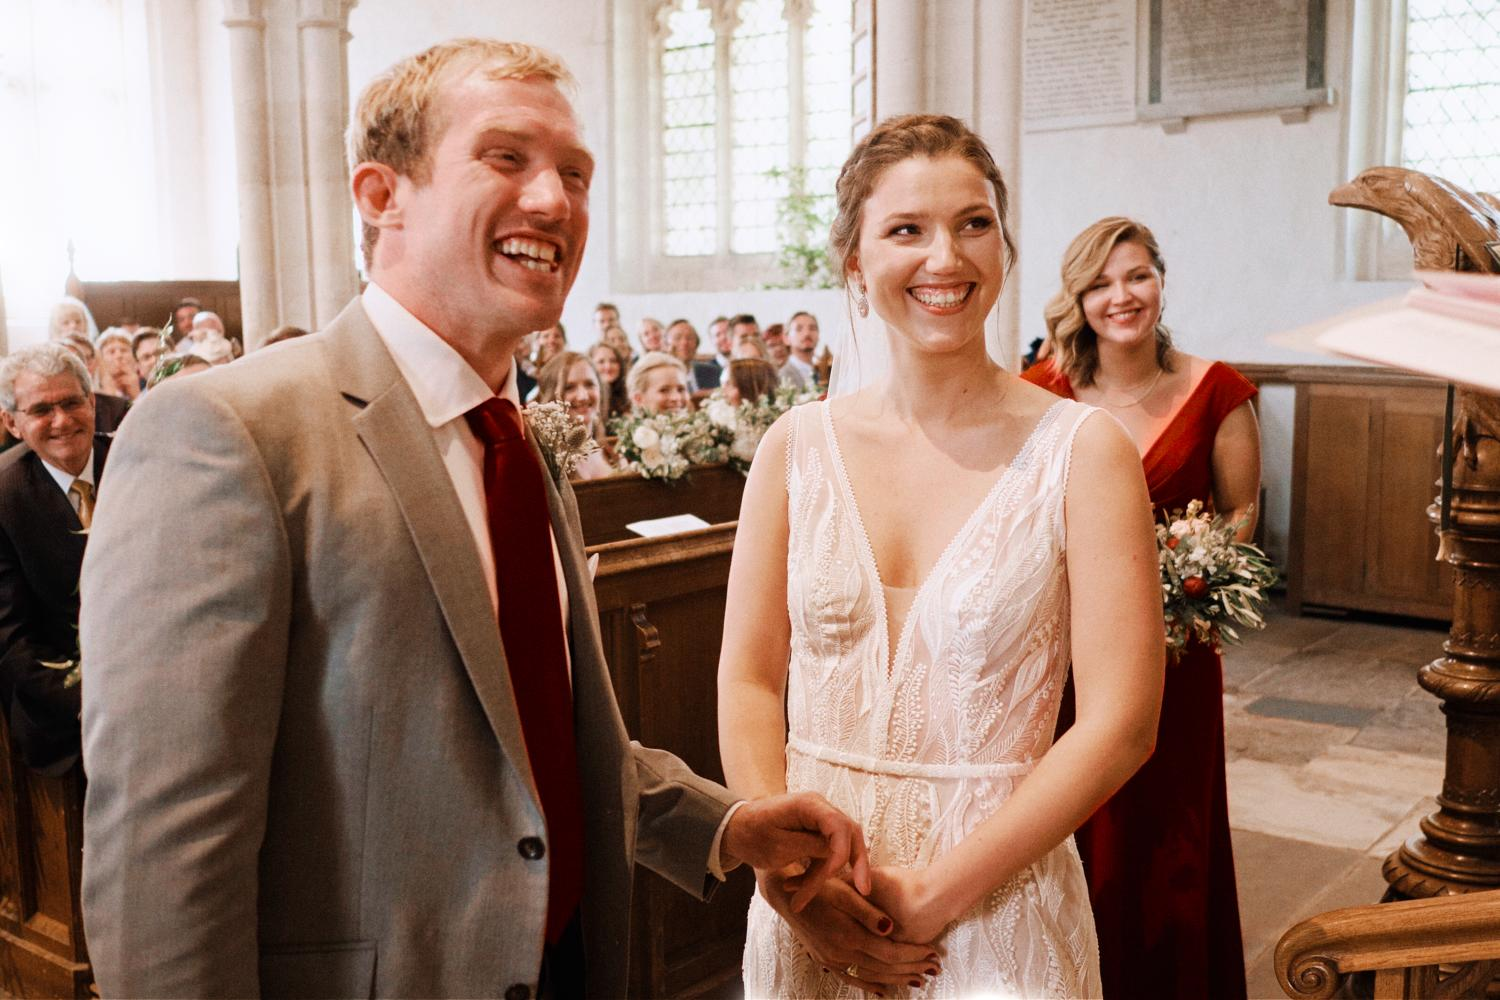 Bride and groom laugh during vows